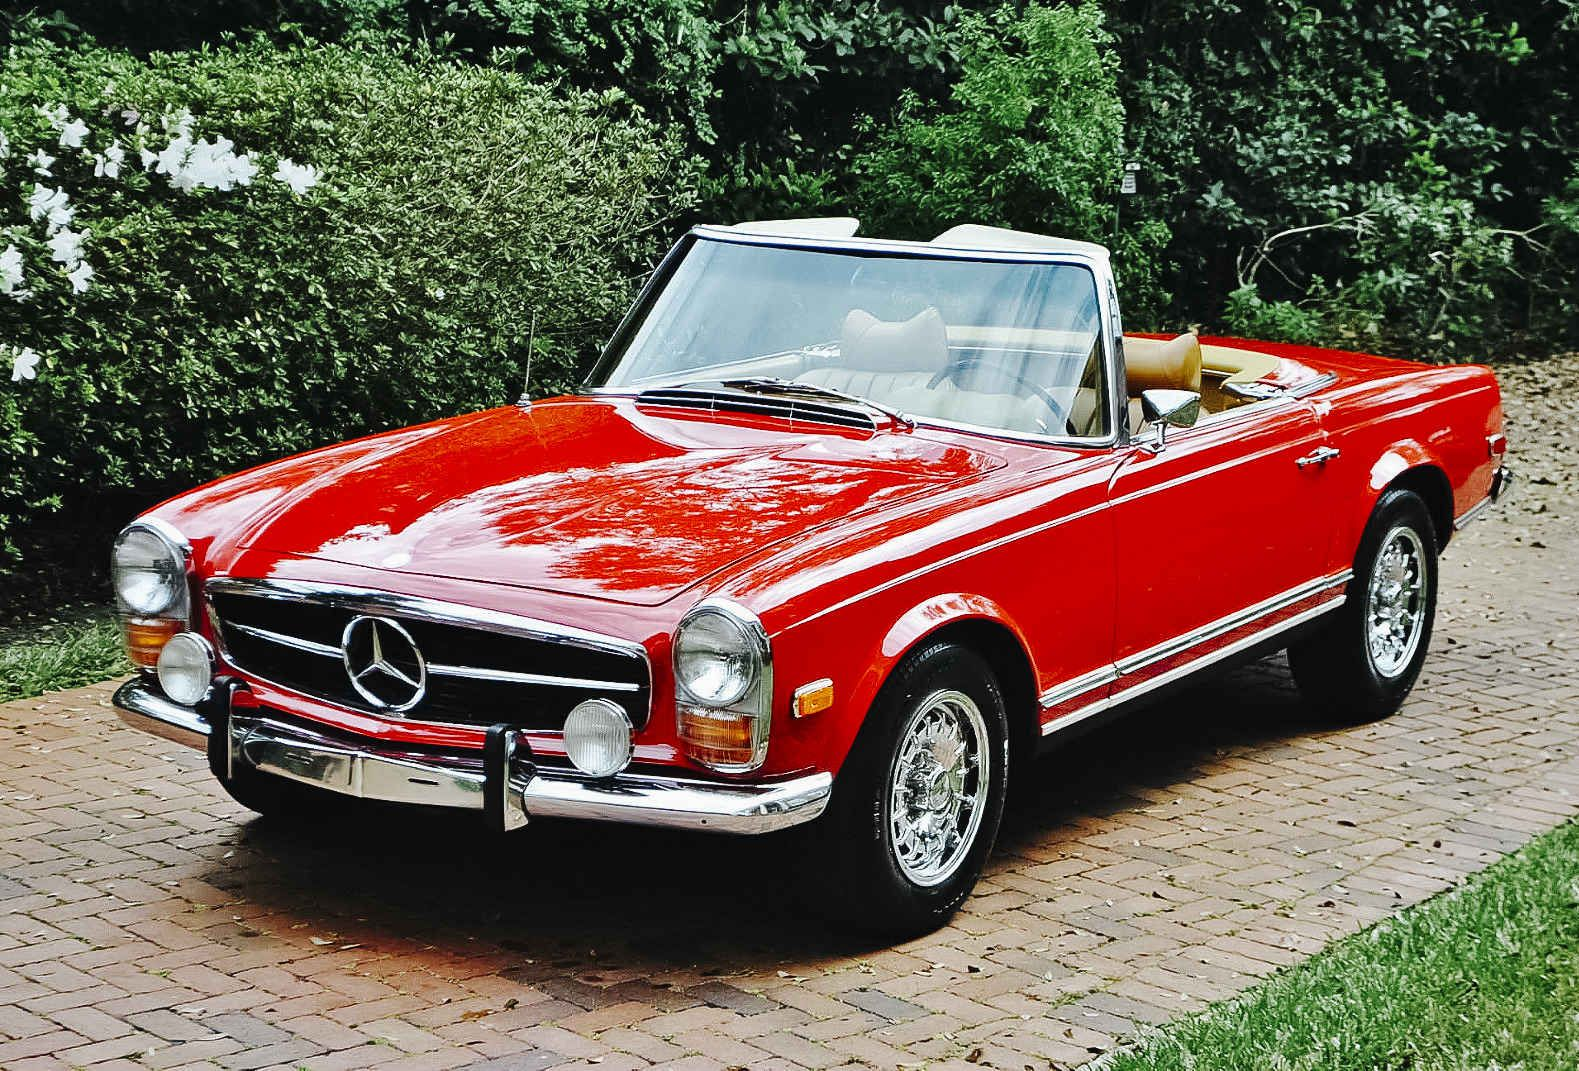 7 Of The Most Pristine Classic Cars For Sale On Ebay Classic Cars Dream Cars Mercedes Cars For Sale